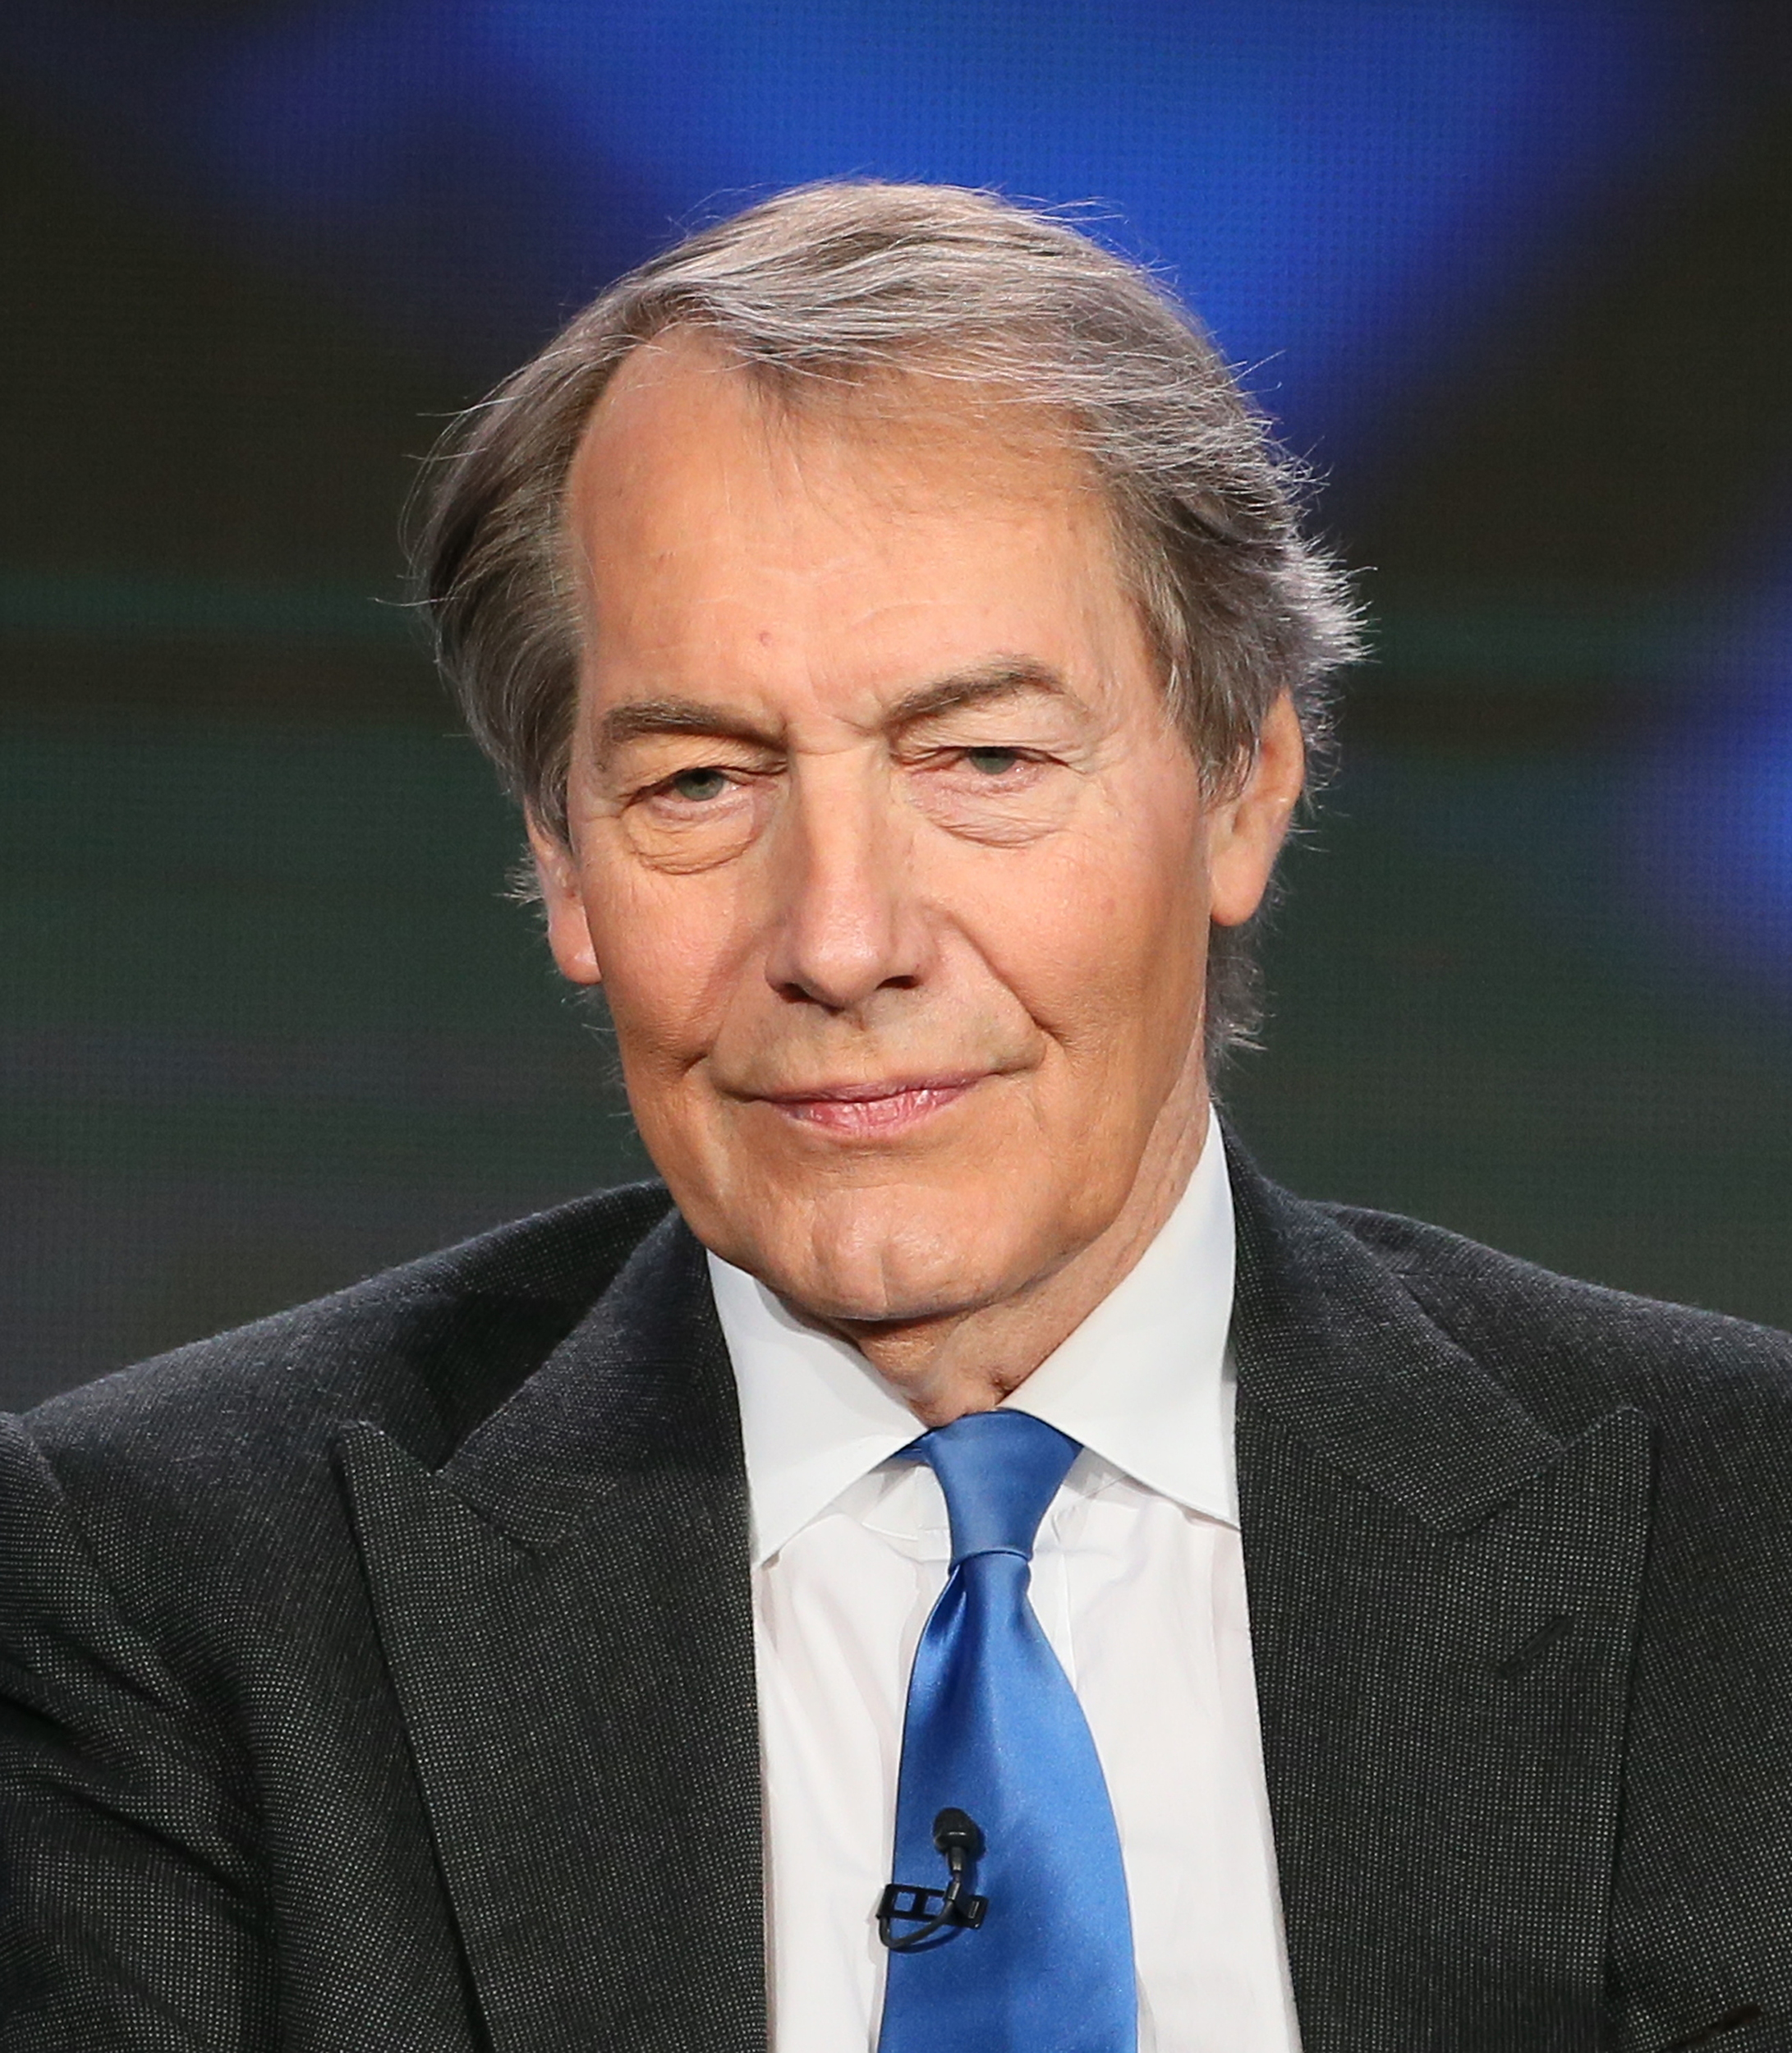 TV host Charlie Rose suspended, apologizes, after sexual harassment accusations